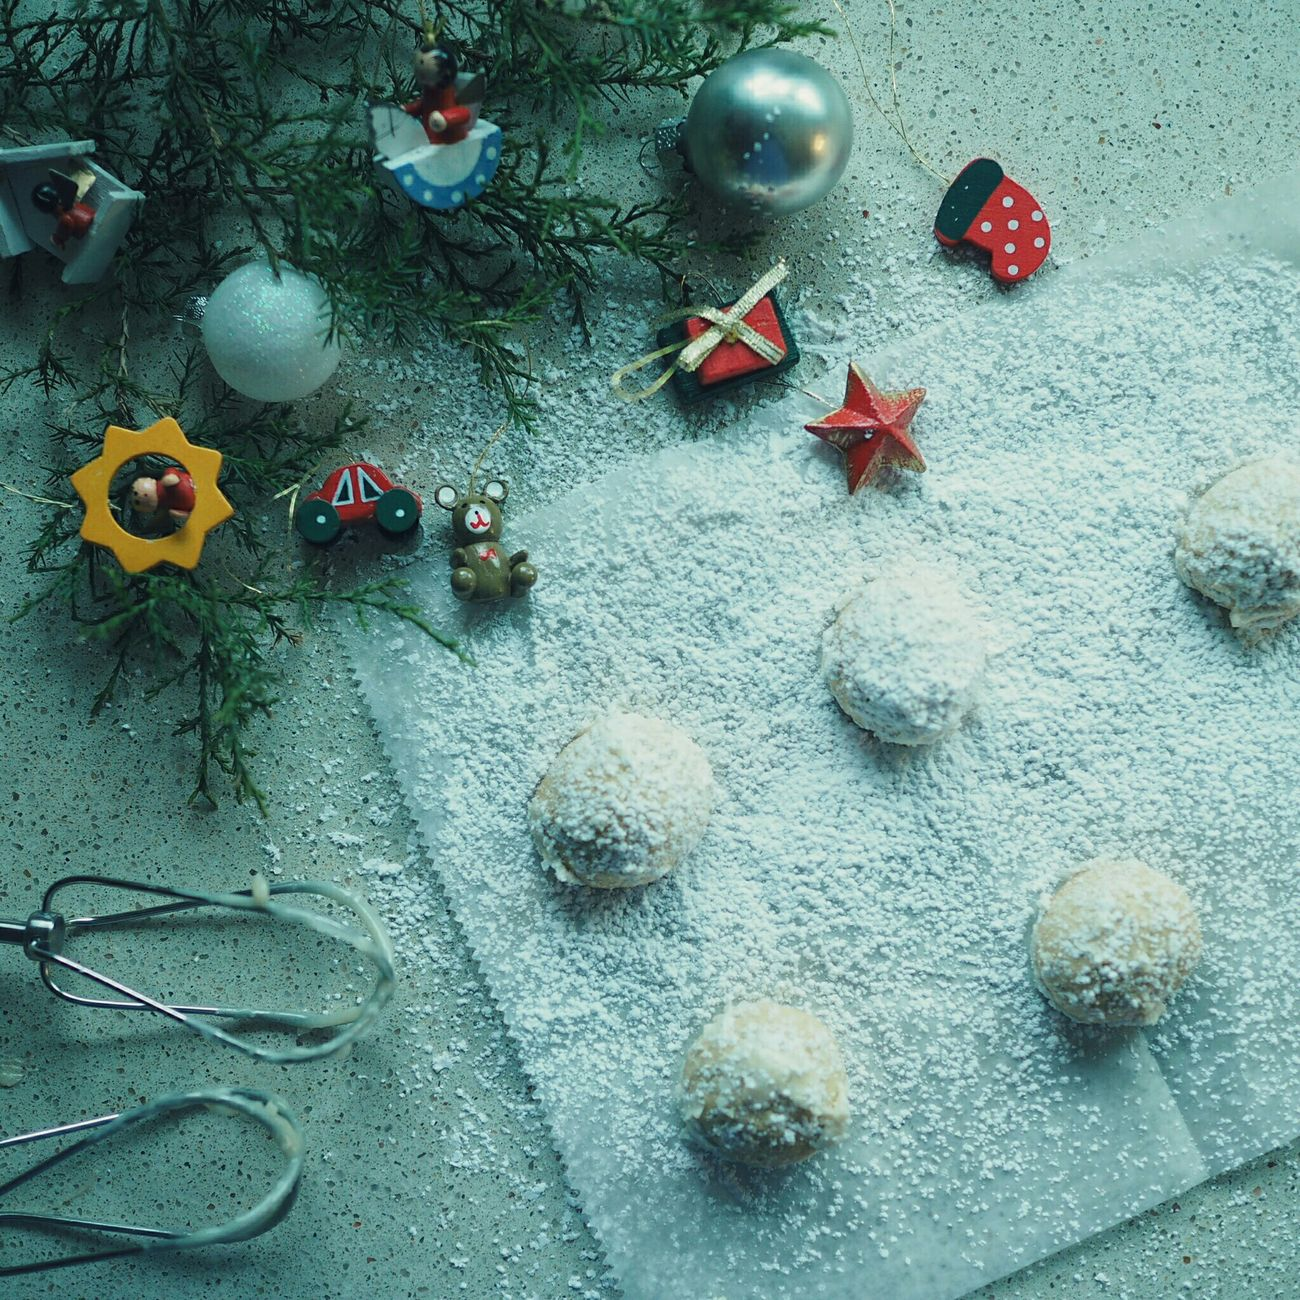 snowball cookies Cookies Showcase: December Christmas Tree Ornaments クリスマス クッキー お菓子作り Homemade 手作りおやつ Snow